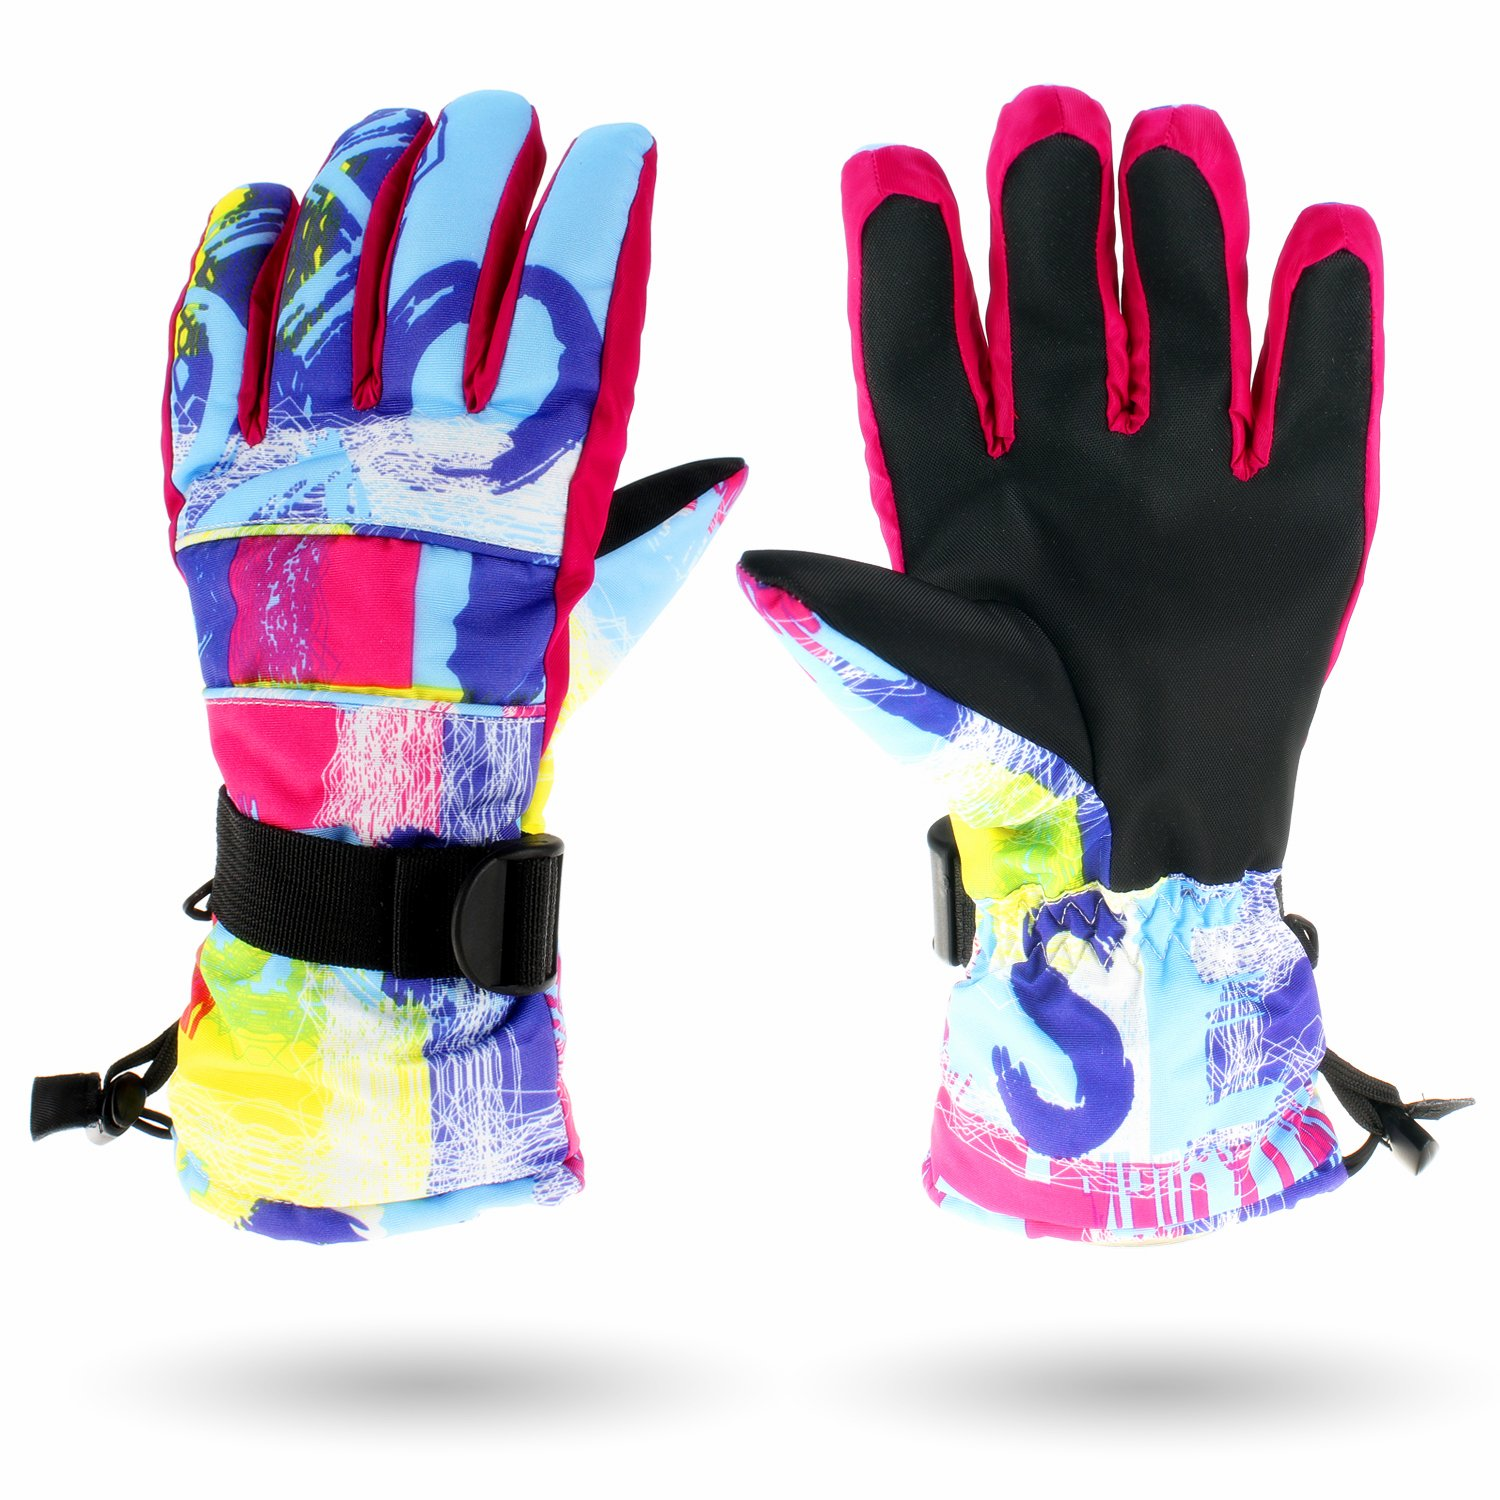 SF.Z Ski Gloves Pink and Blue Graffiti//Small Snowboard Cycling Snowmobile Biking Athletic Gloves Waterproof Windproof Snow Proof Warm Breathable Fashion Comfortable Flexible Gloves for Women